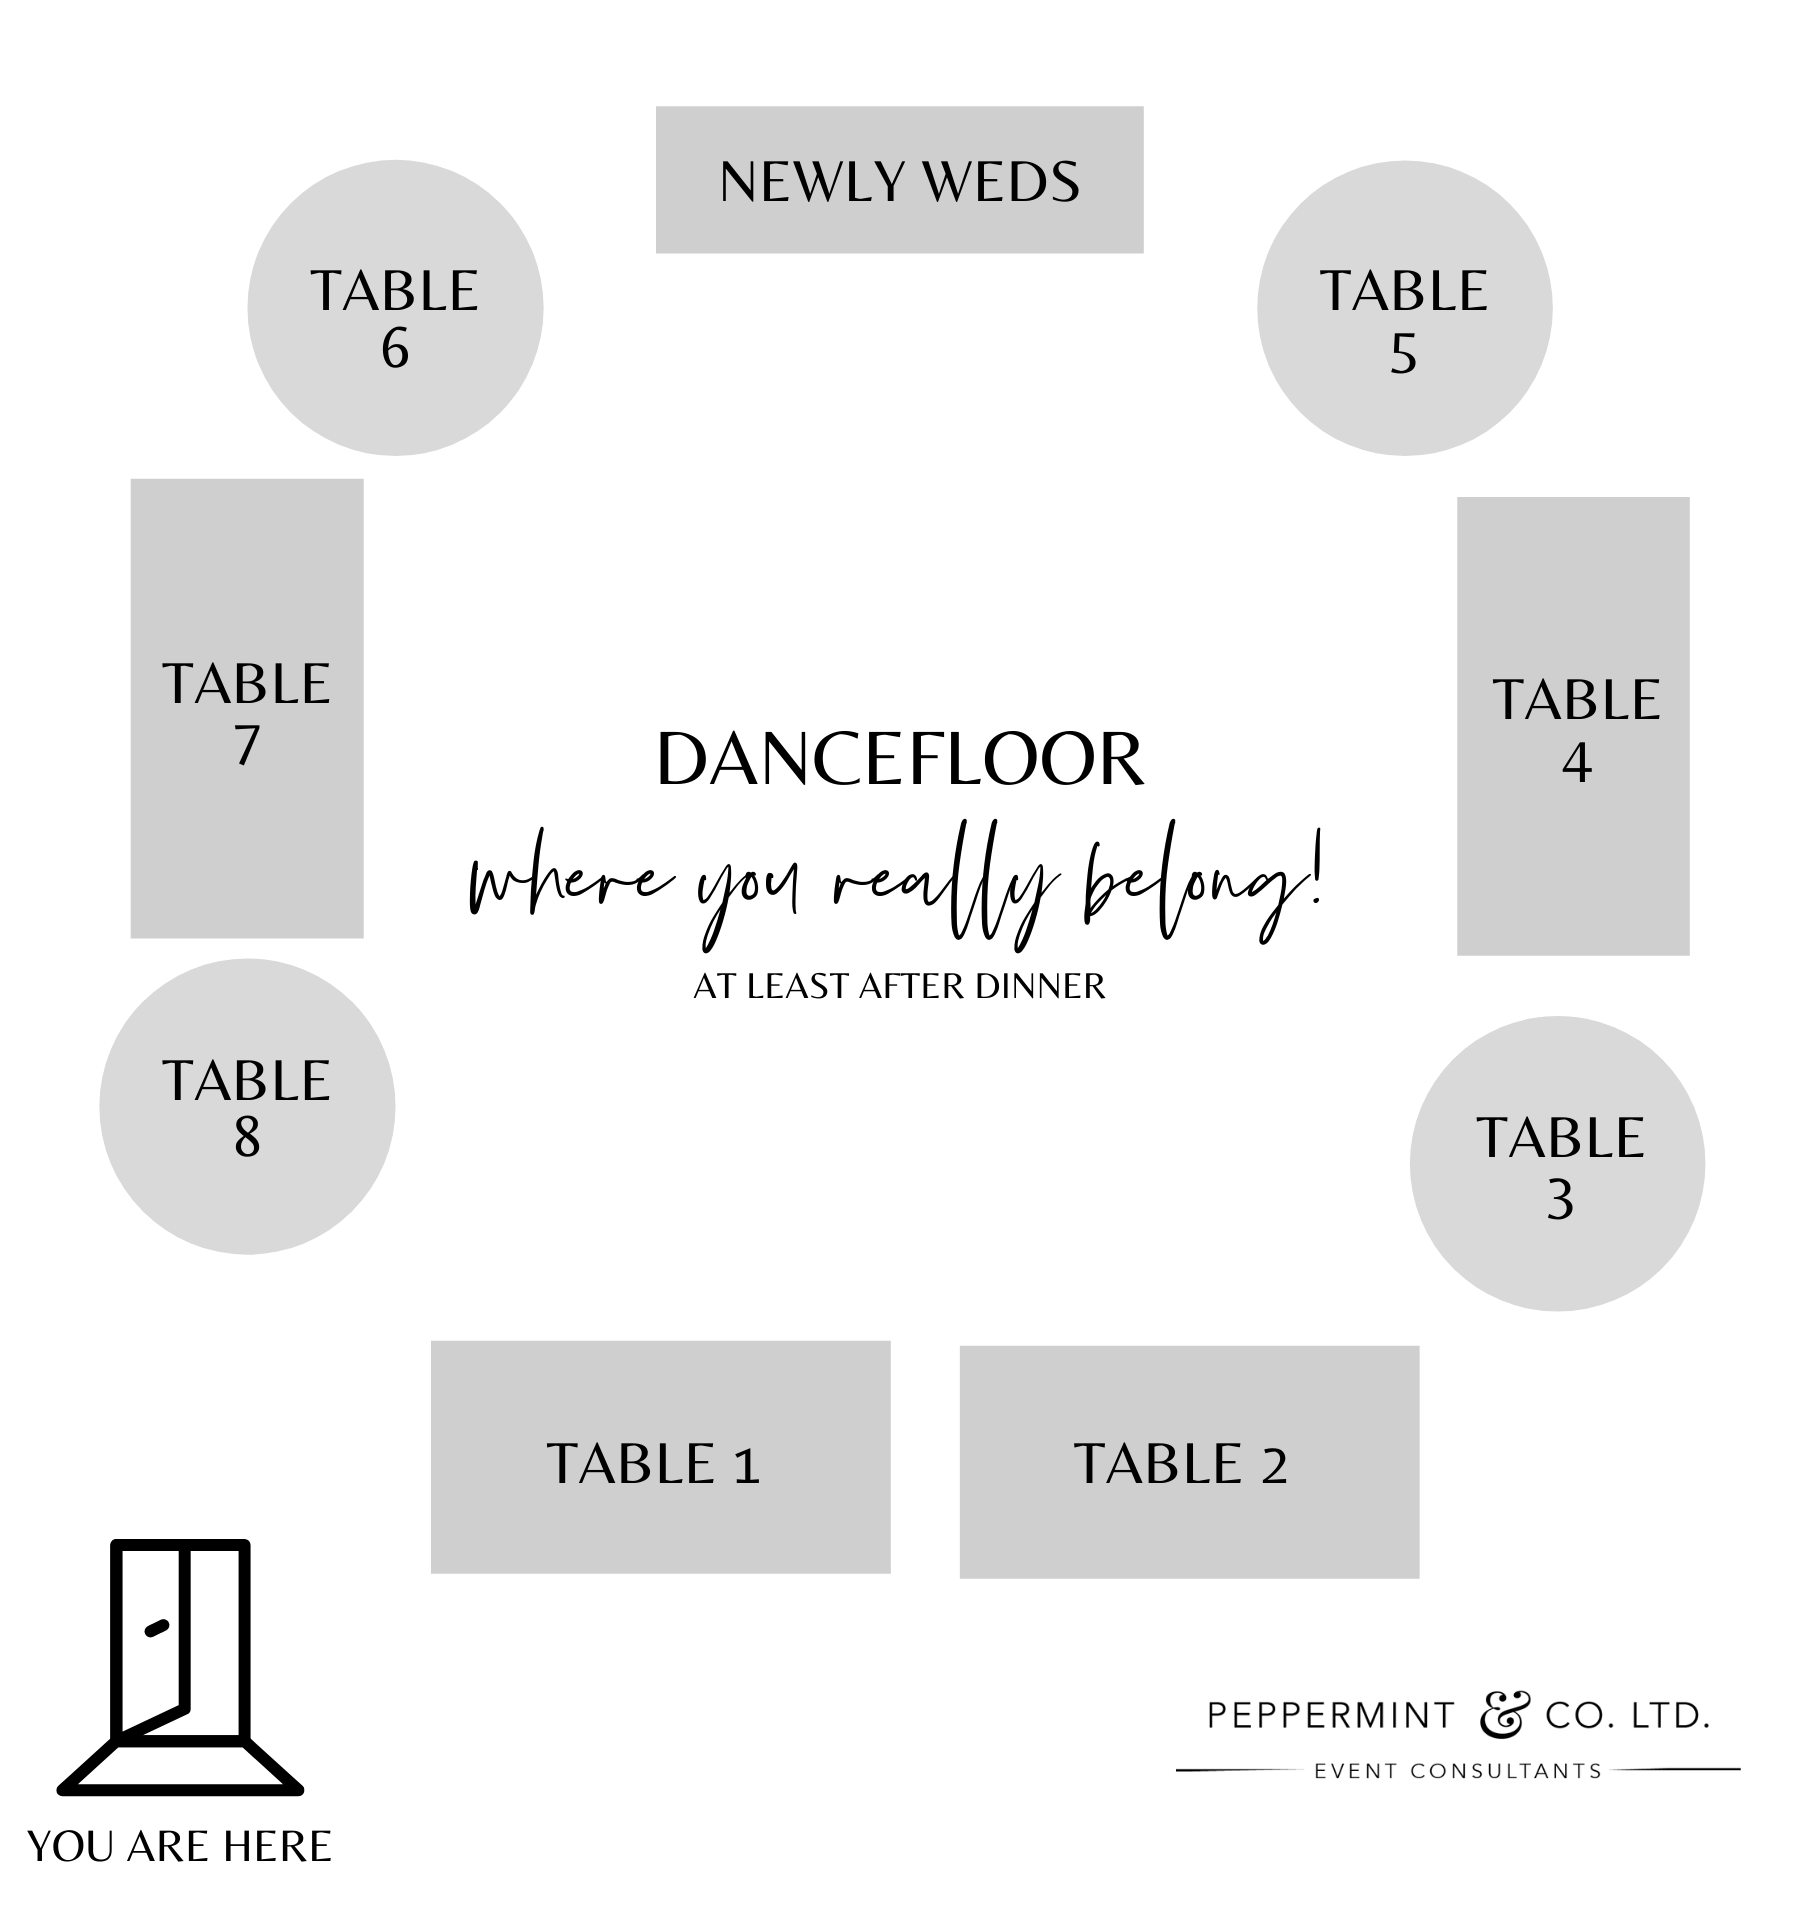 how to make a wedding seating chart - table guide